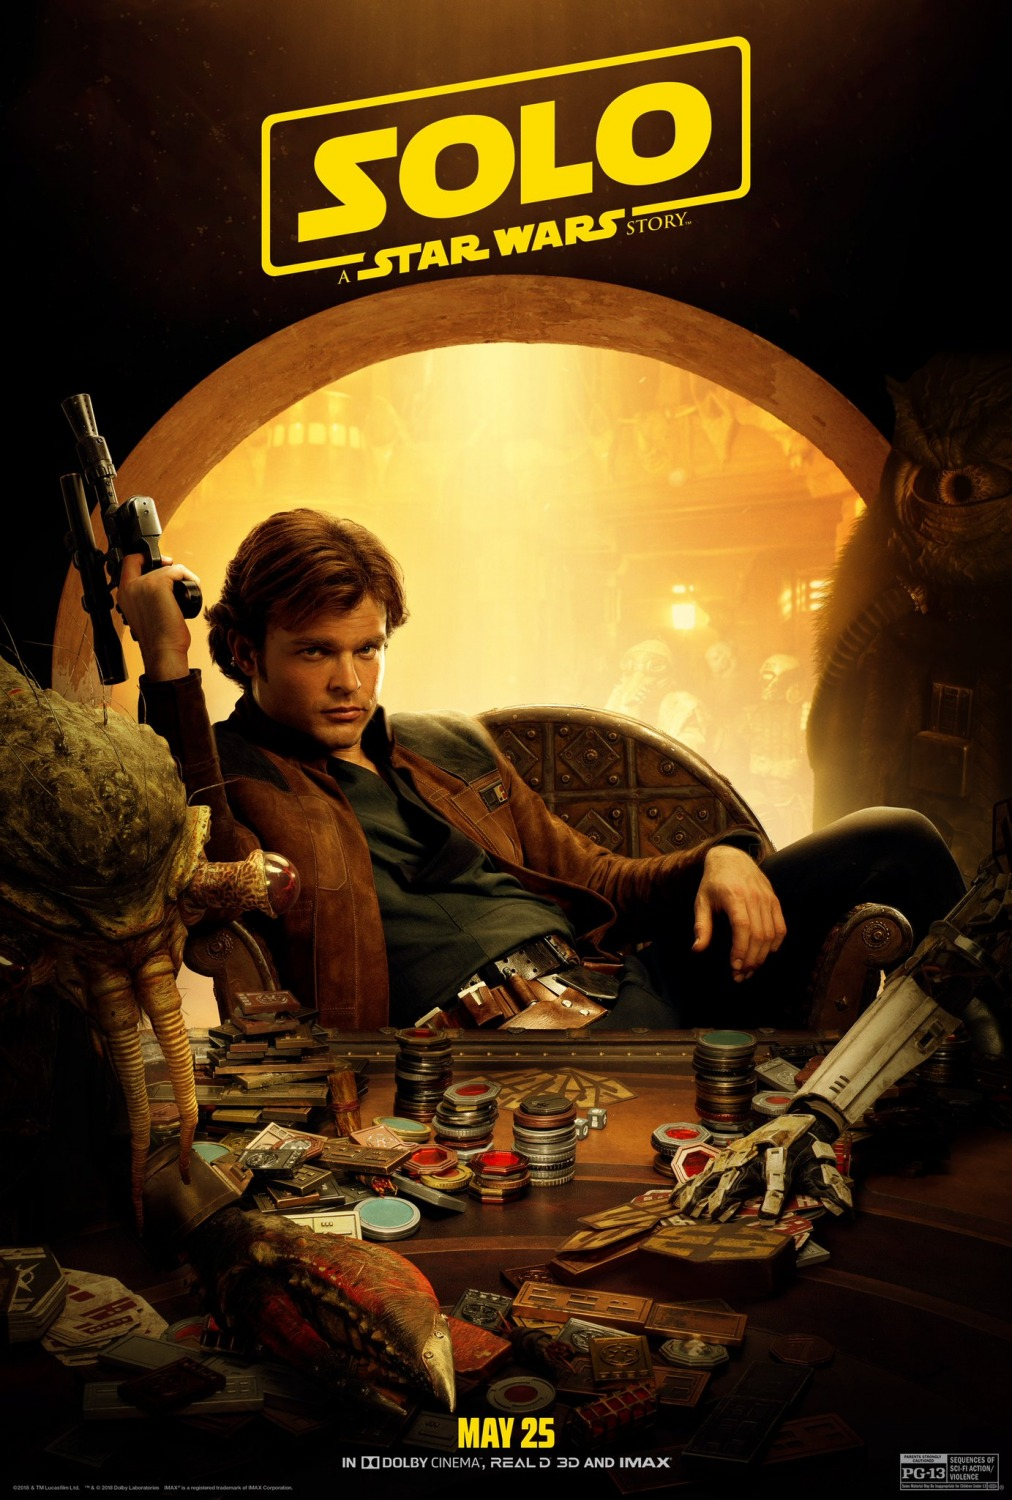 Extra Large Movie Poster Image for Solo: A Star Wars Story (#44 of 45)